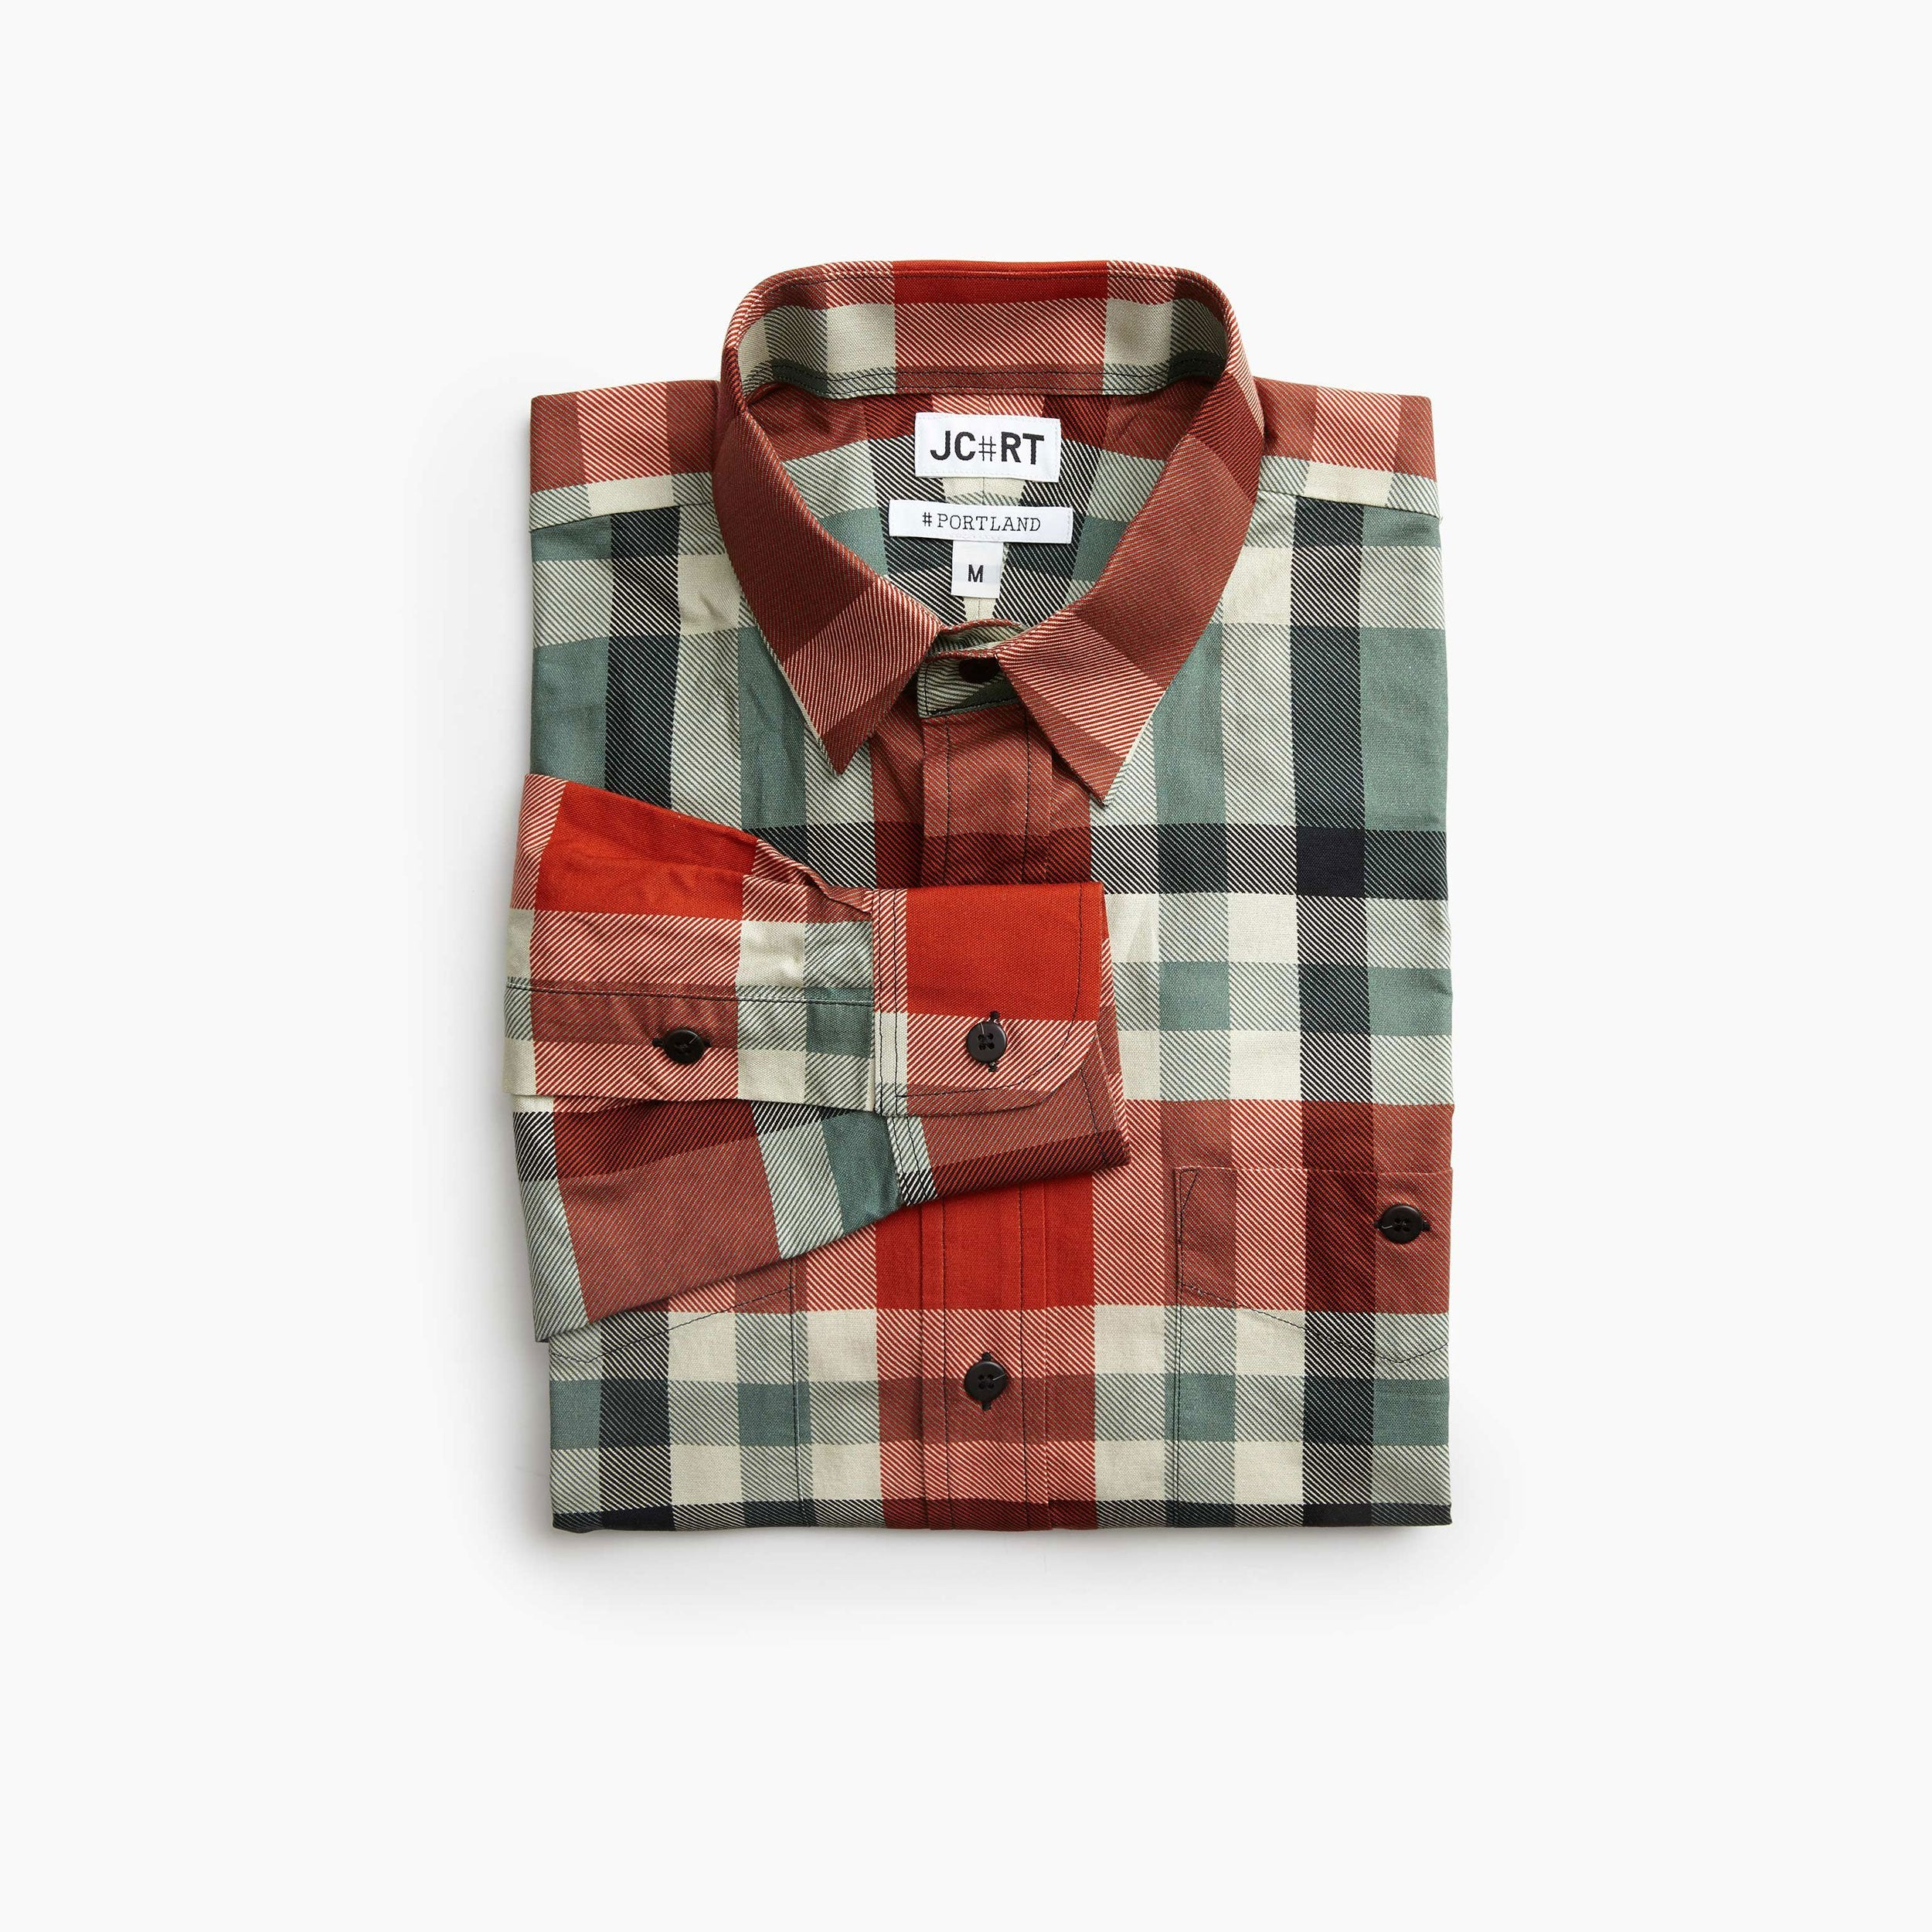 The Italian Comsubin Plaid Shirt